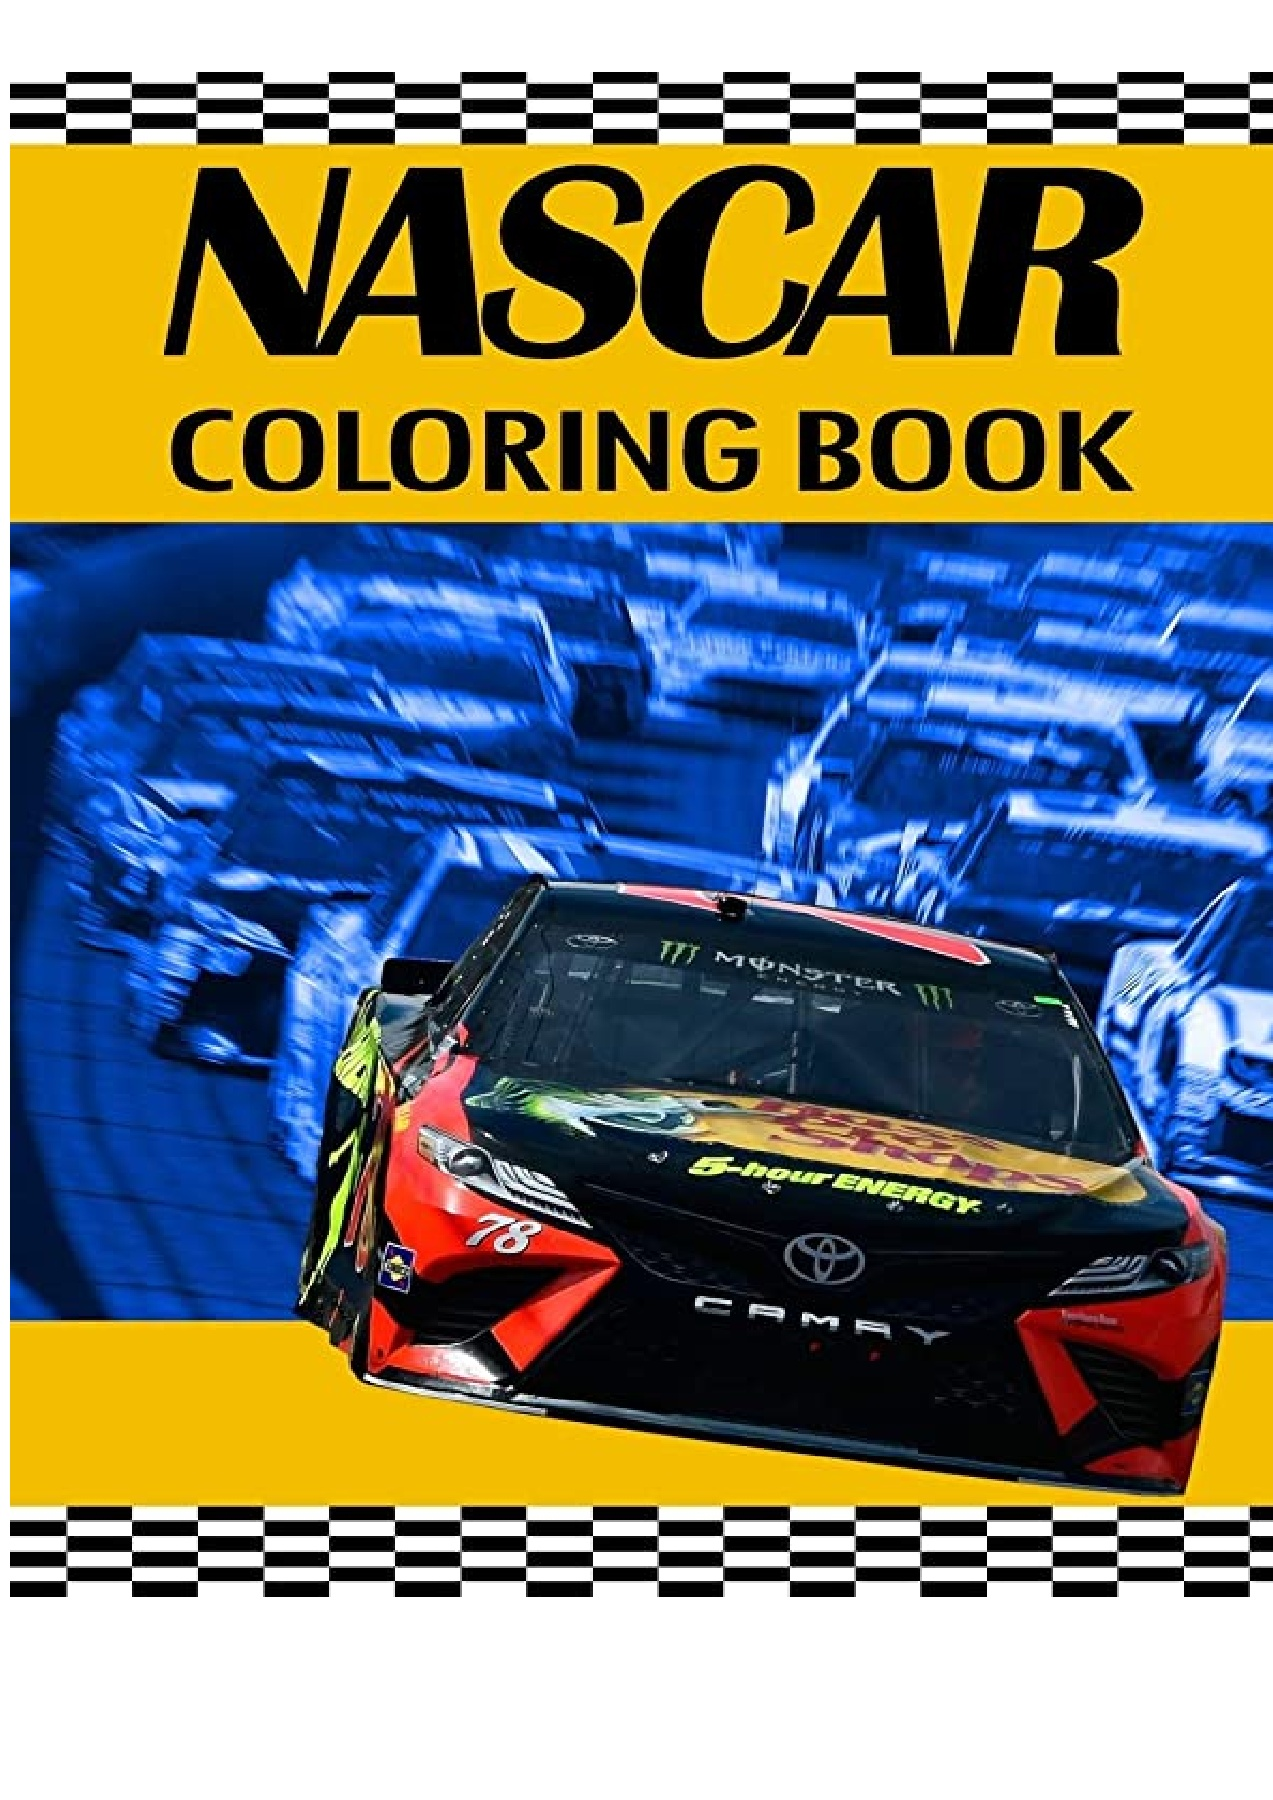 Audiobook Download Nascar Coloring Book Cars Coloring Book Sport Cars Coloring Book Racing Cars Coloring Book Stress Relieving And Relaxation Coloring Book Free Acces